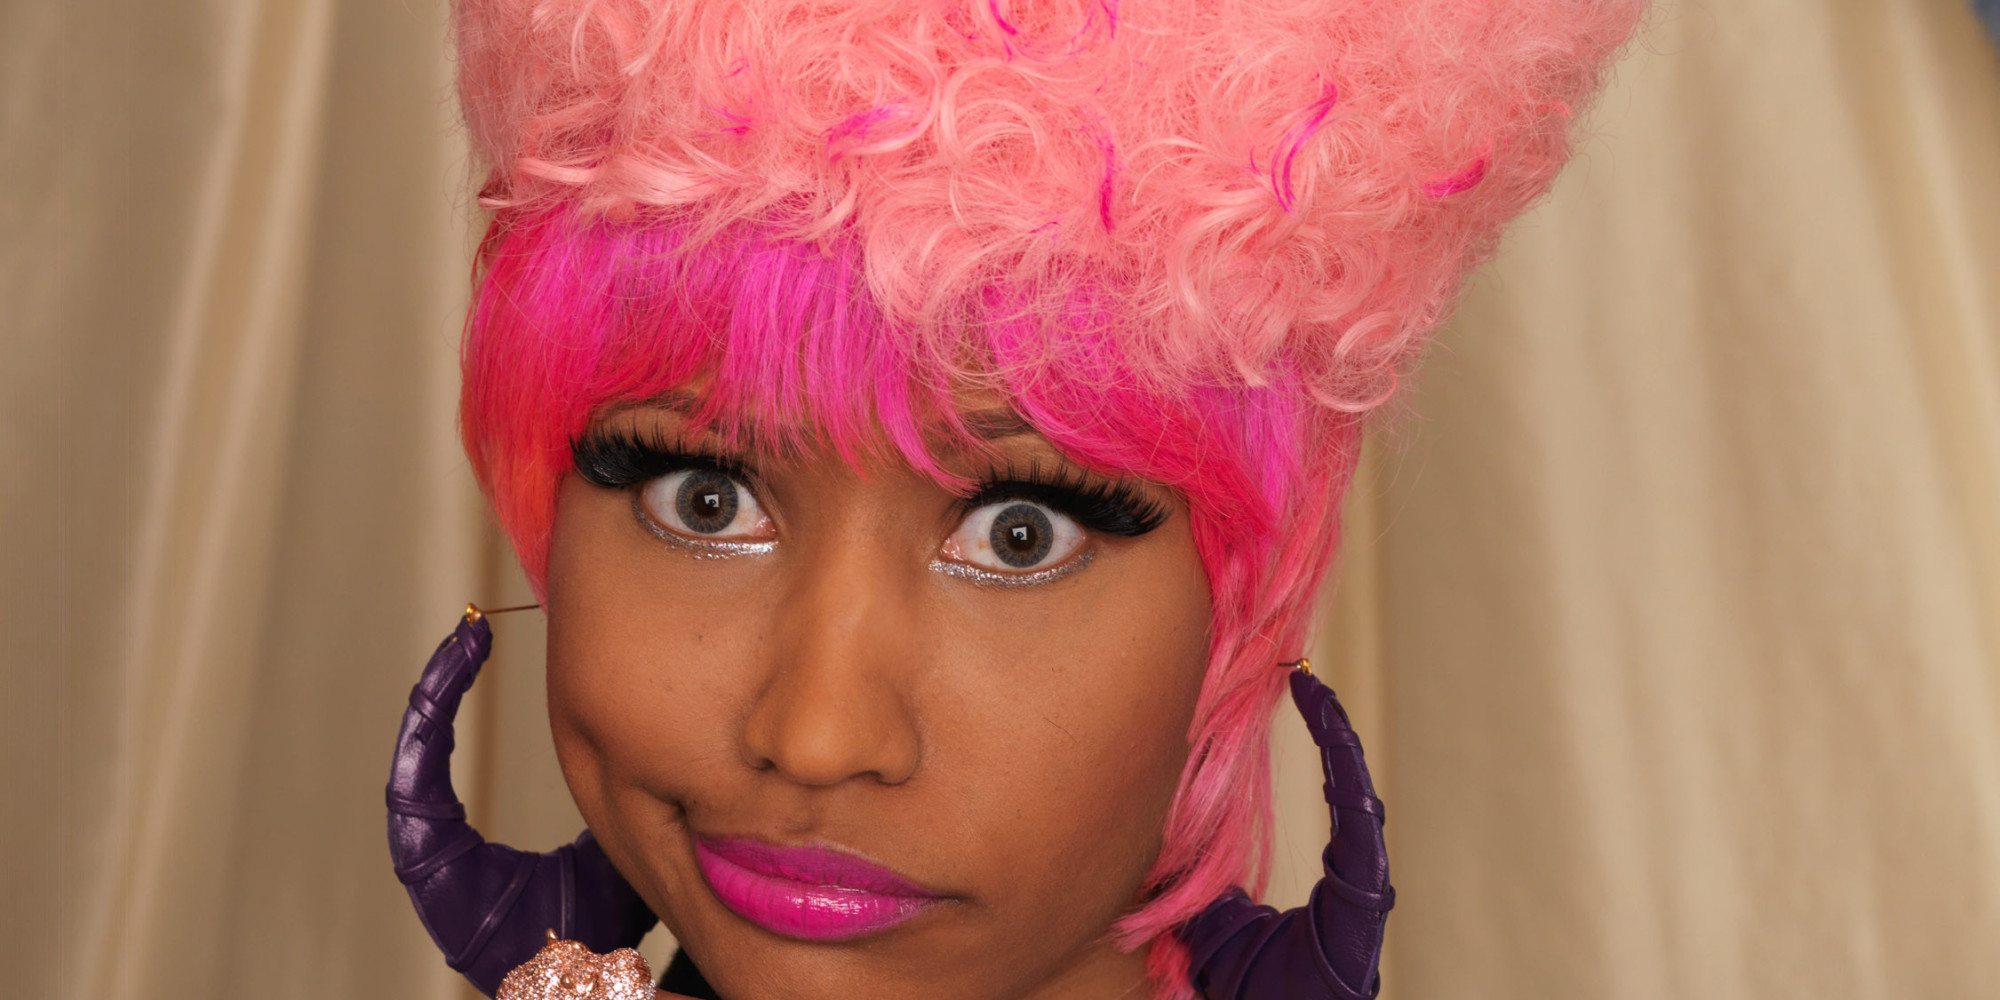 The Real Reason Nicki Minaj Has Gone For A More Natural